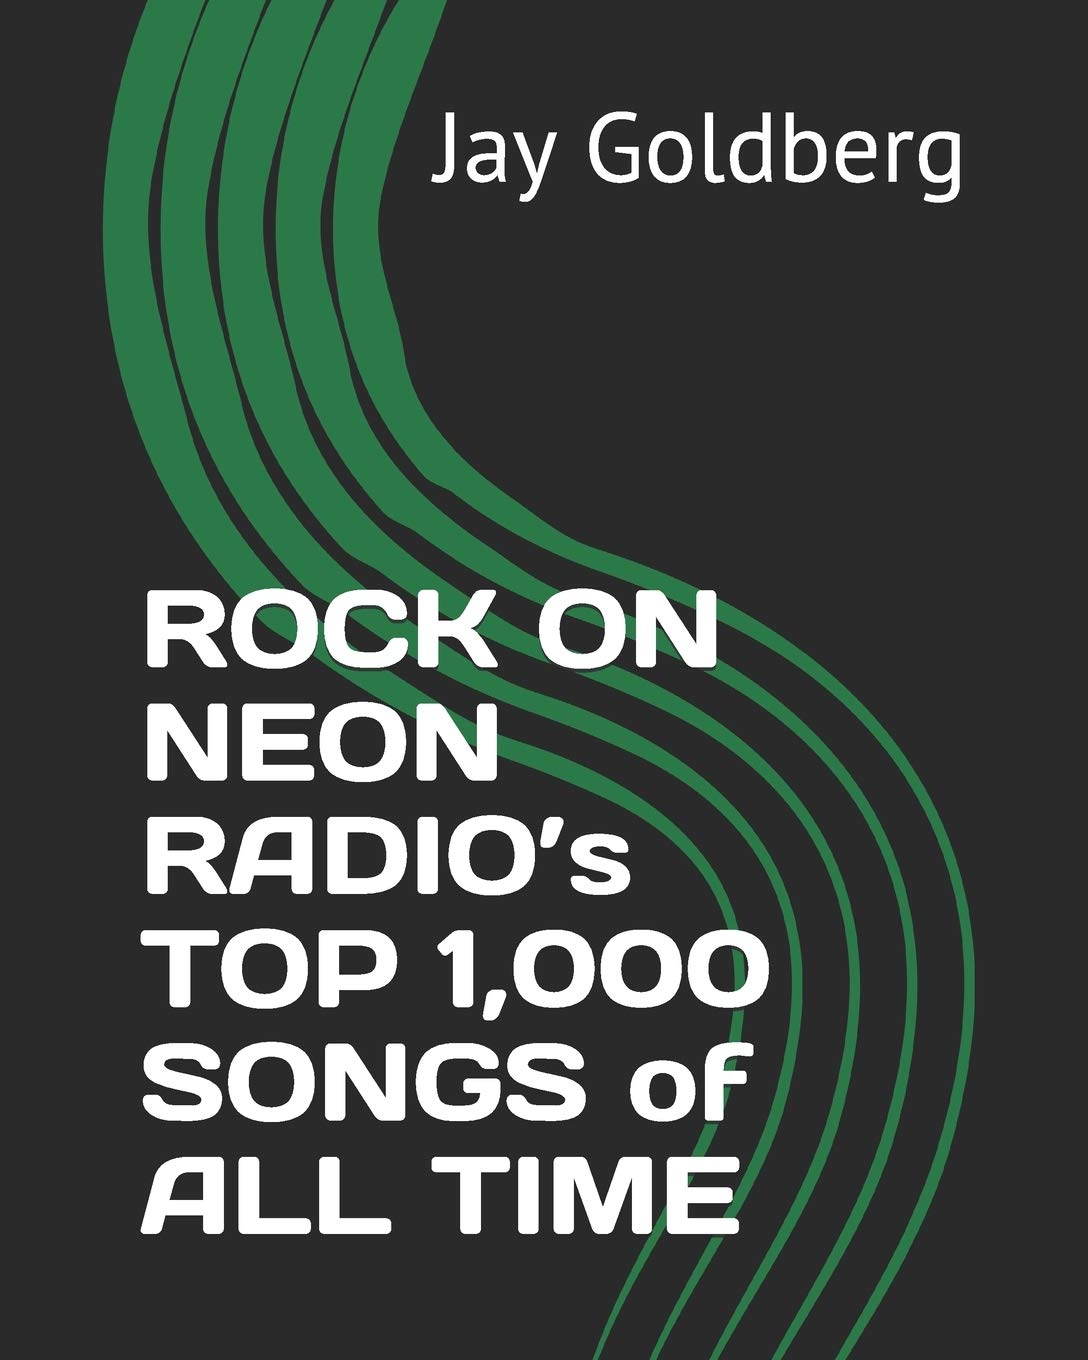 Current popular songs on the radio